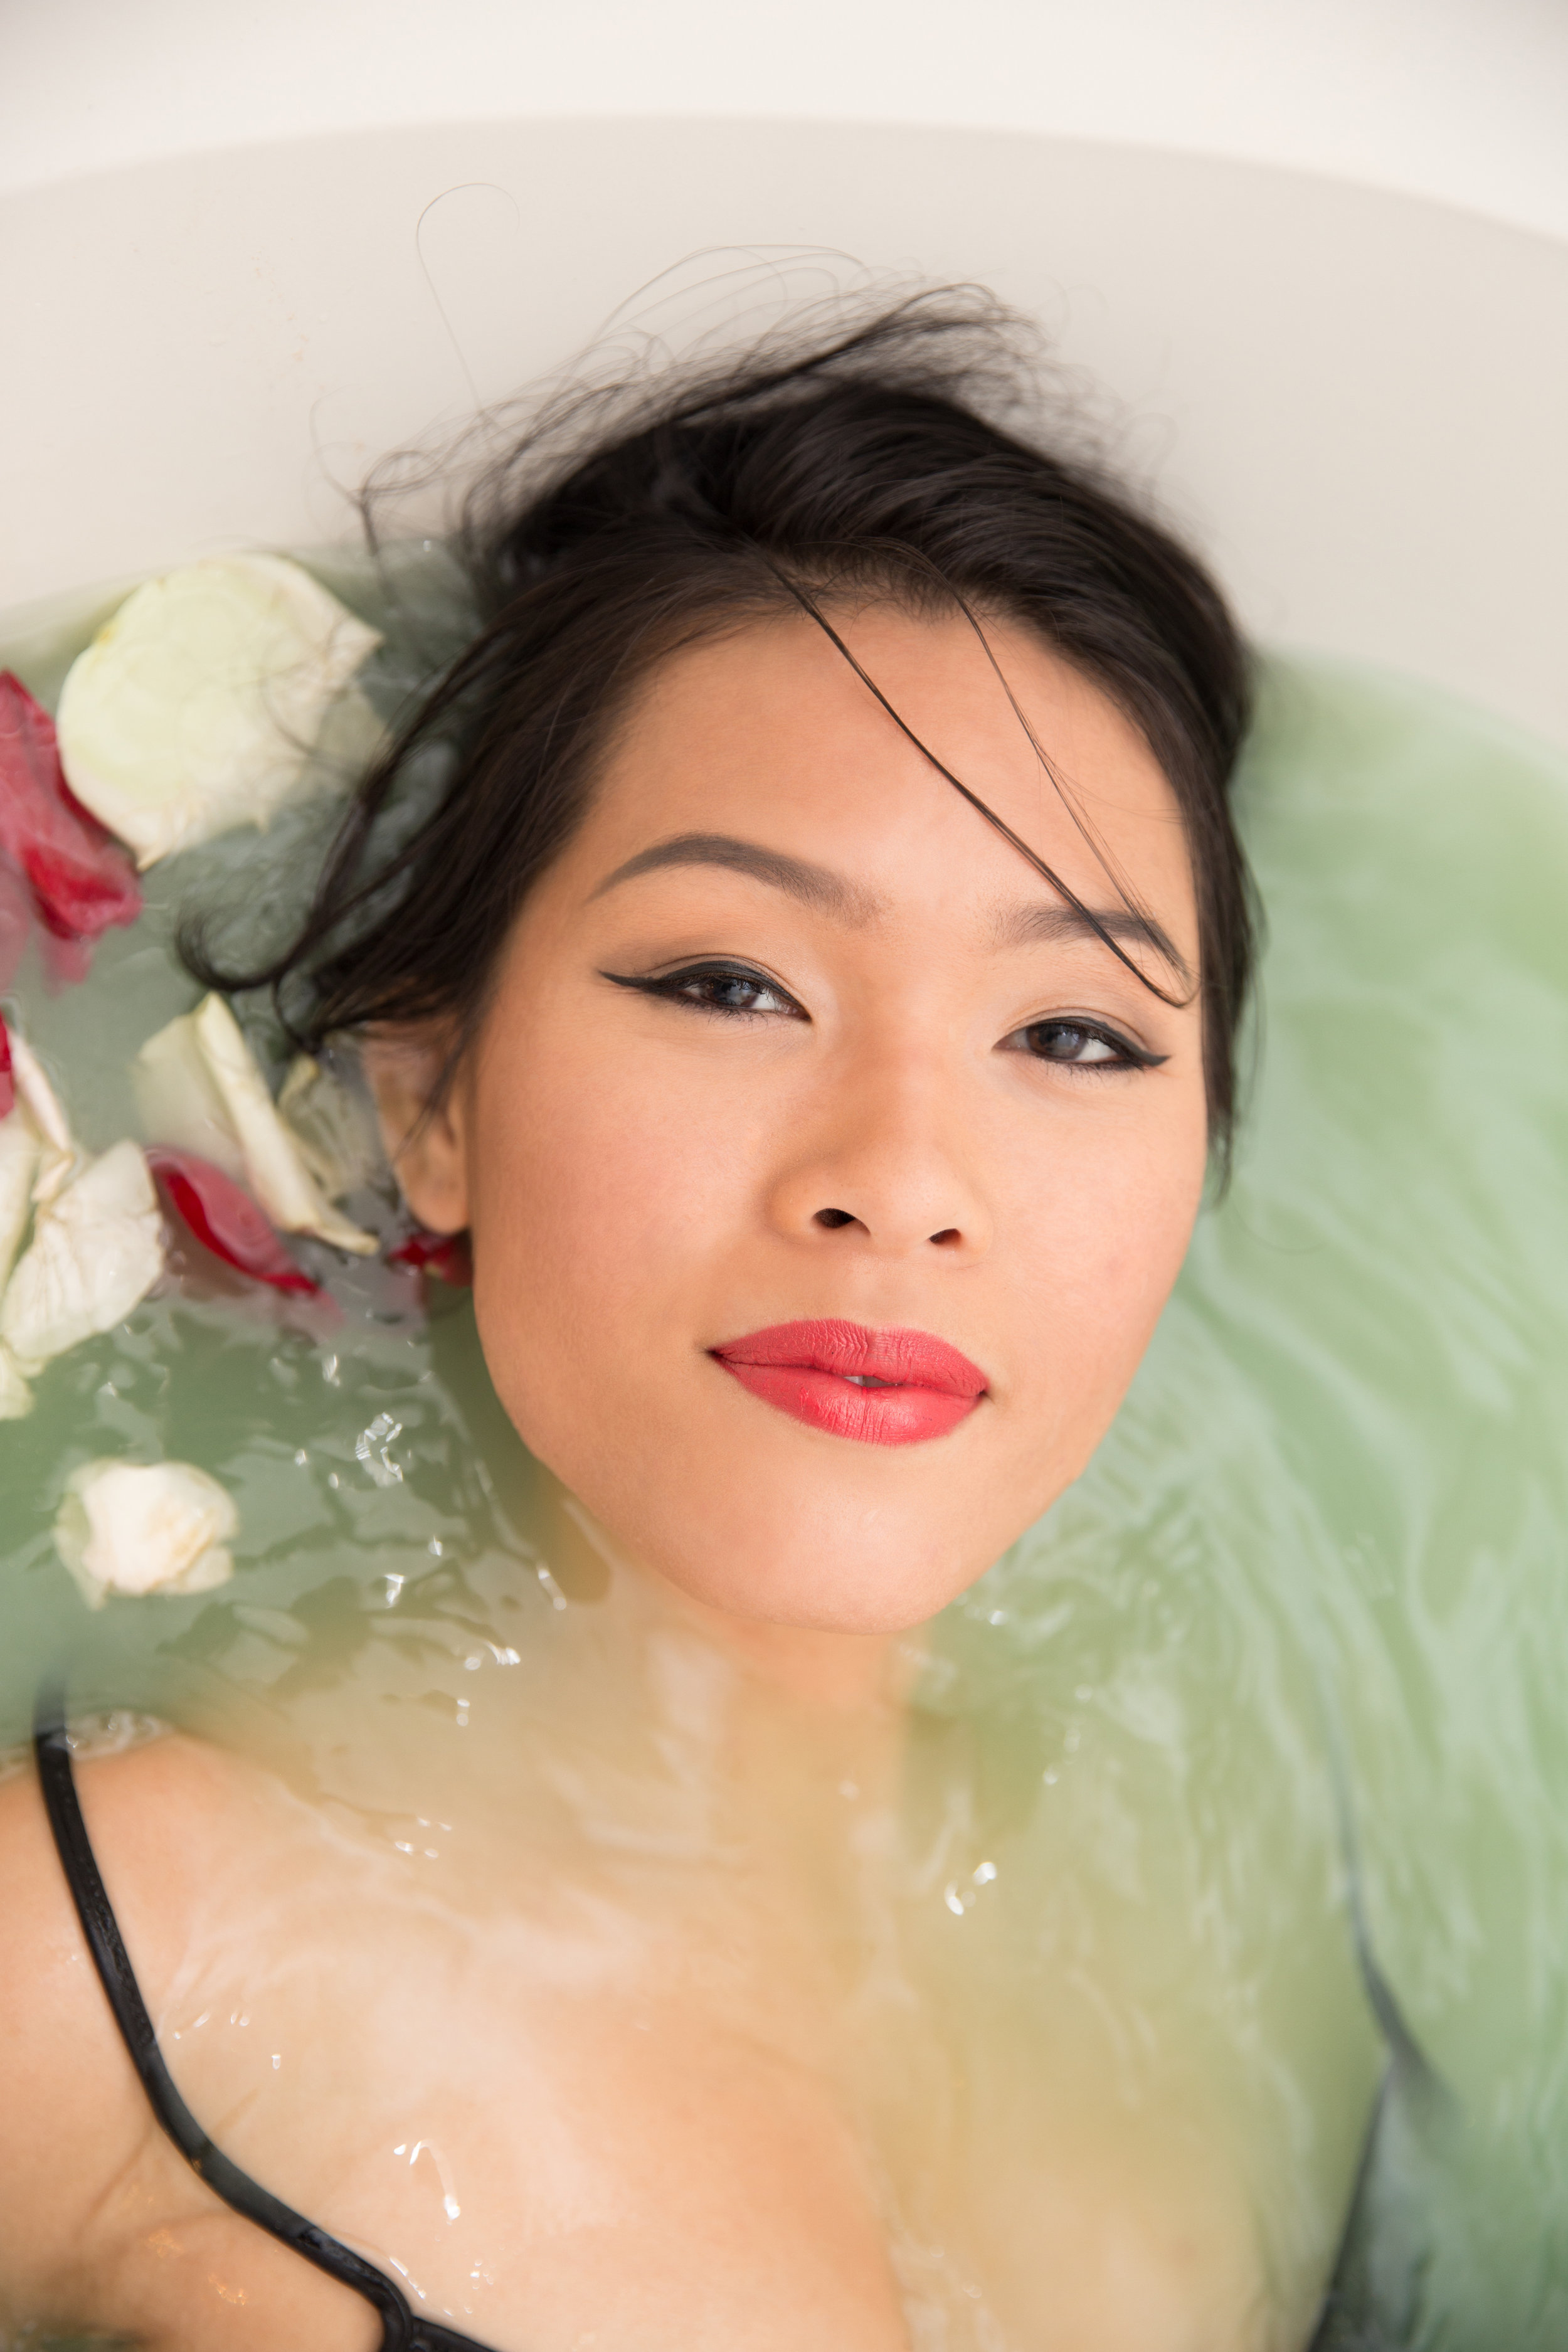 teal bath with rose petals